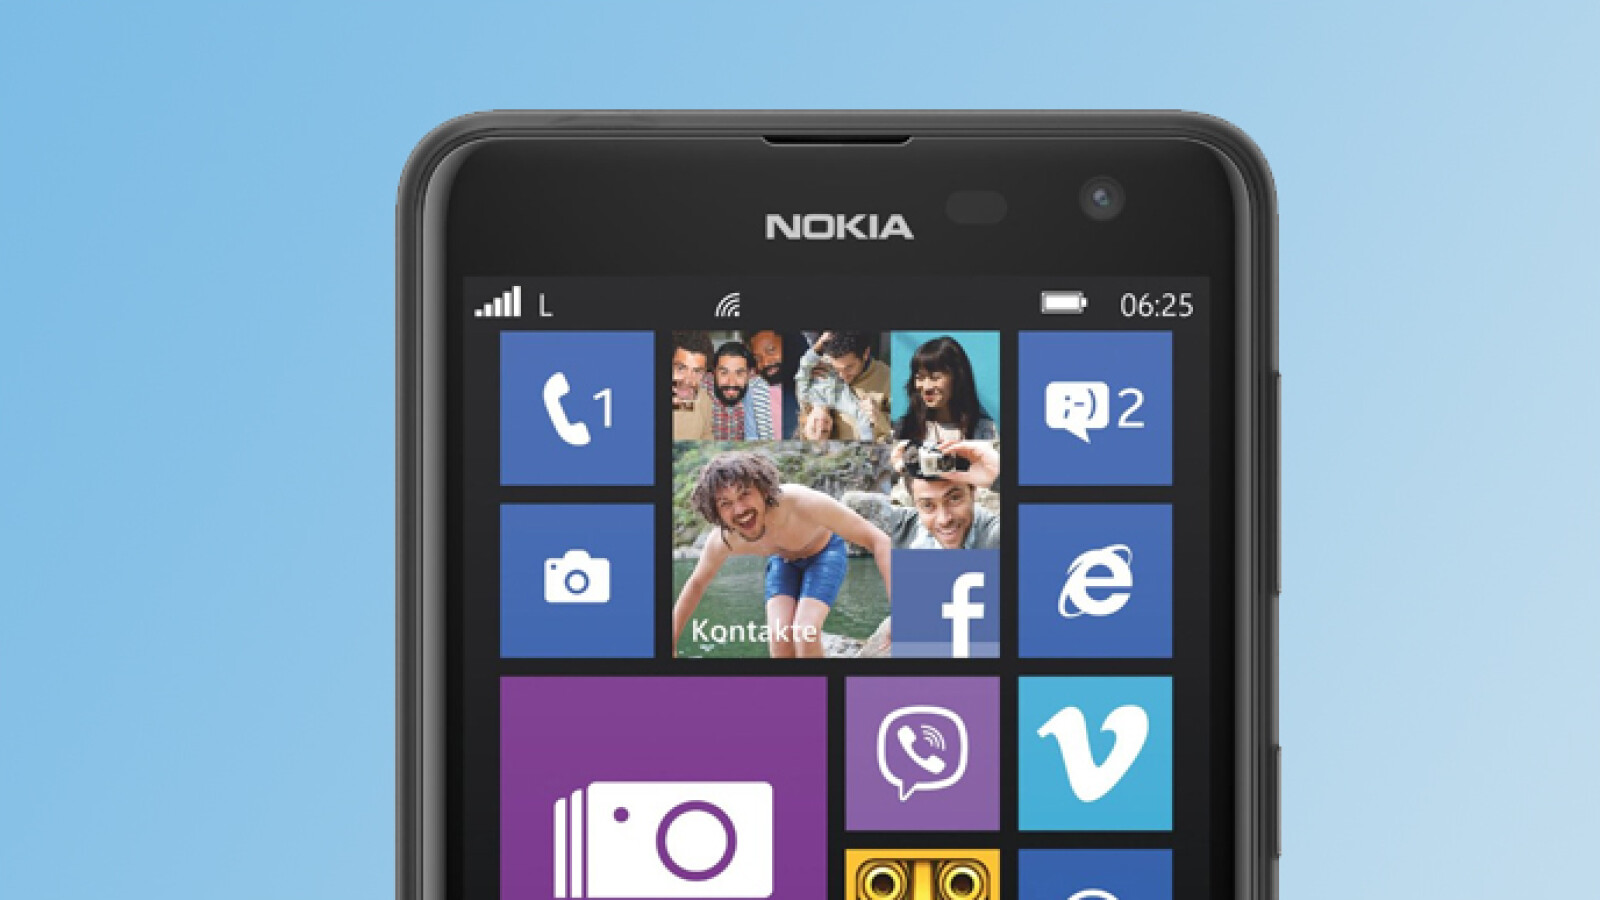 nokia lumia 625 im test lte smartphone f r unter 200 euro. Black Bedroom Furniture Sets. Home Design Ideas